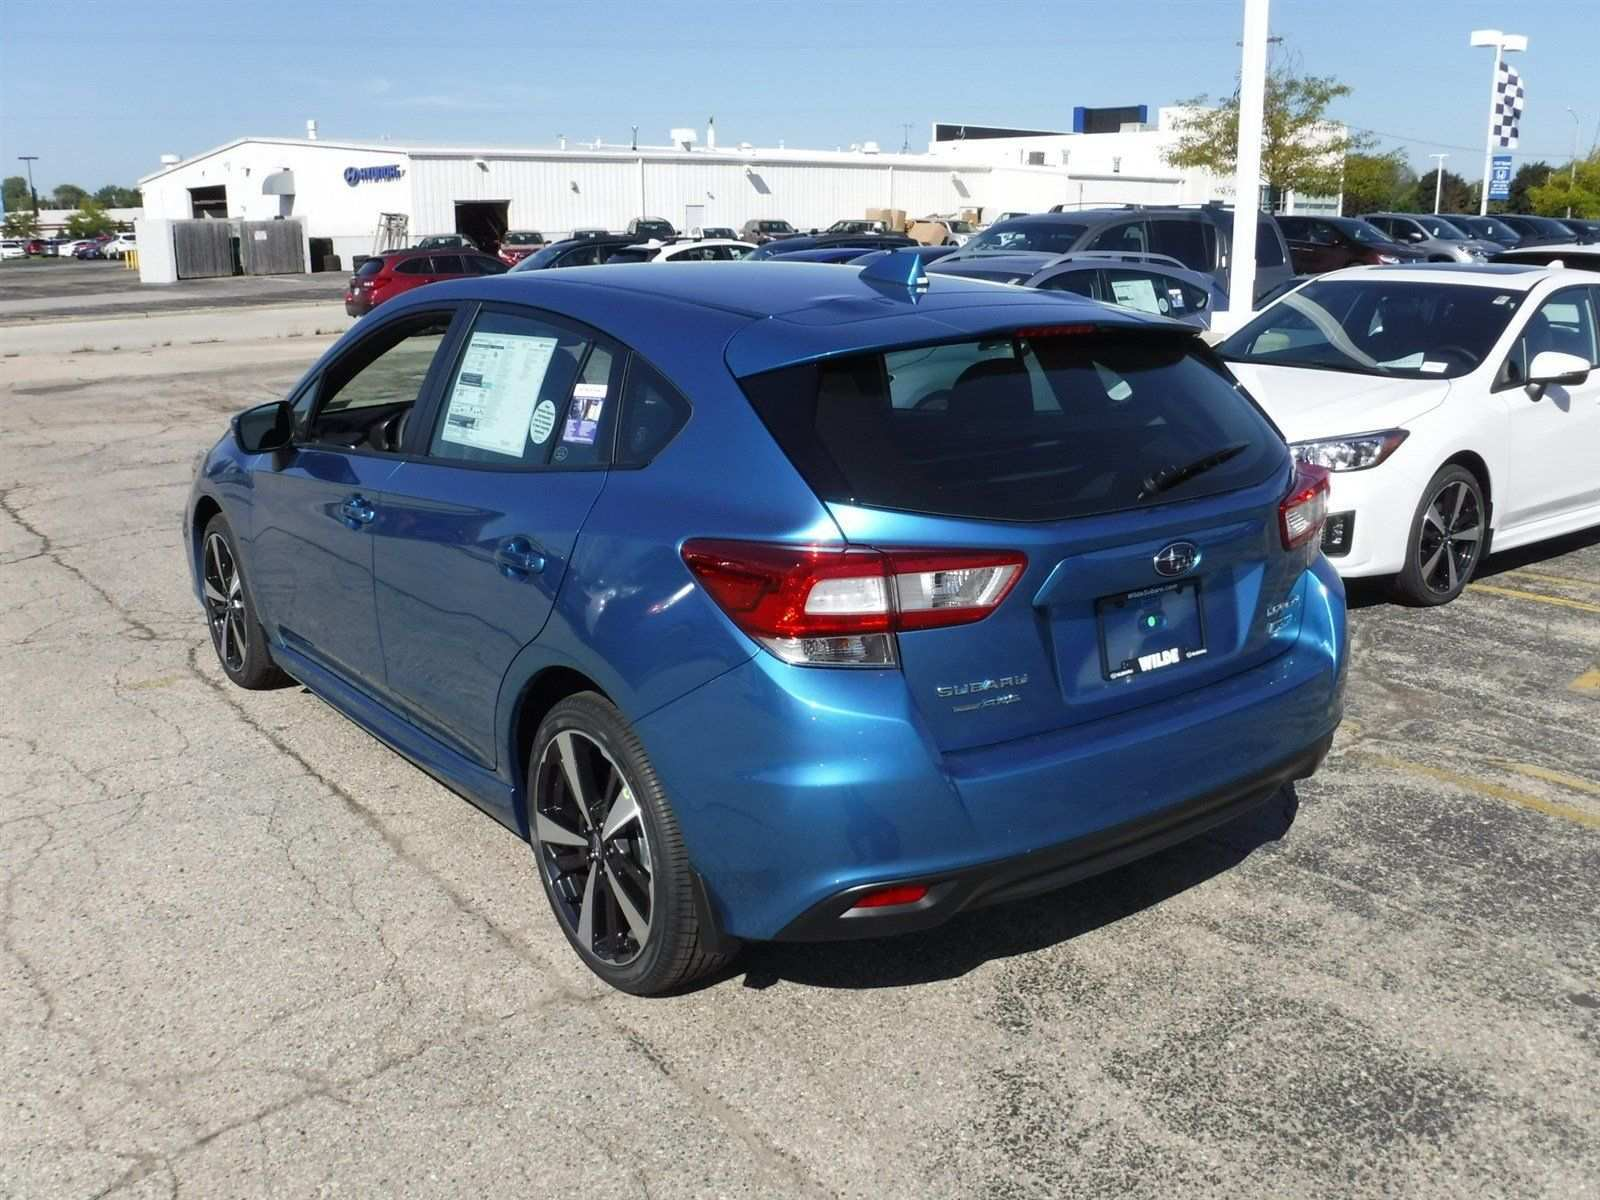 49 Best Review Subaru 2019 Hatchback Prices by Subaru 2019 Hatchback